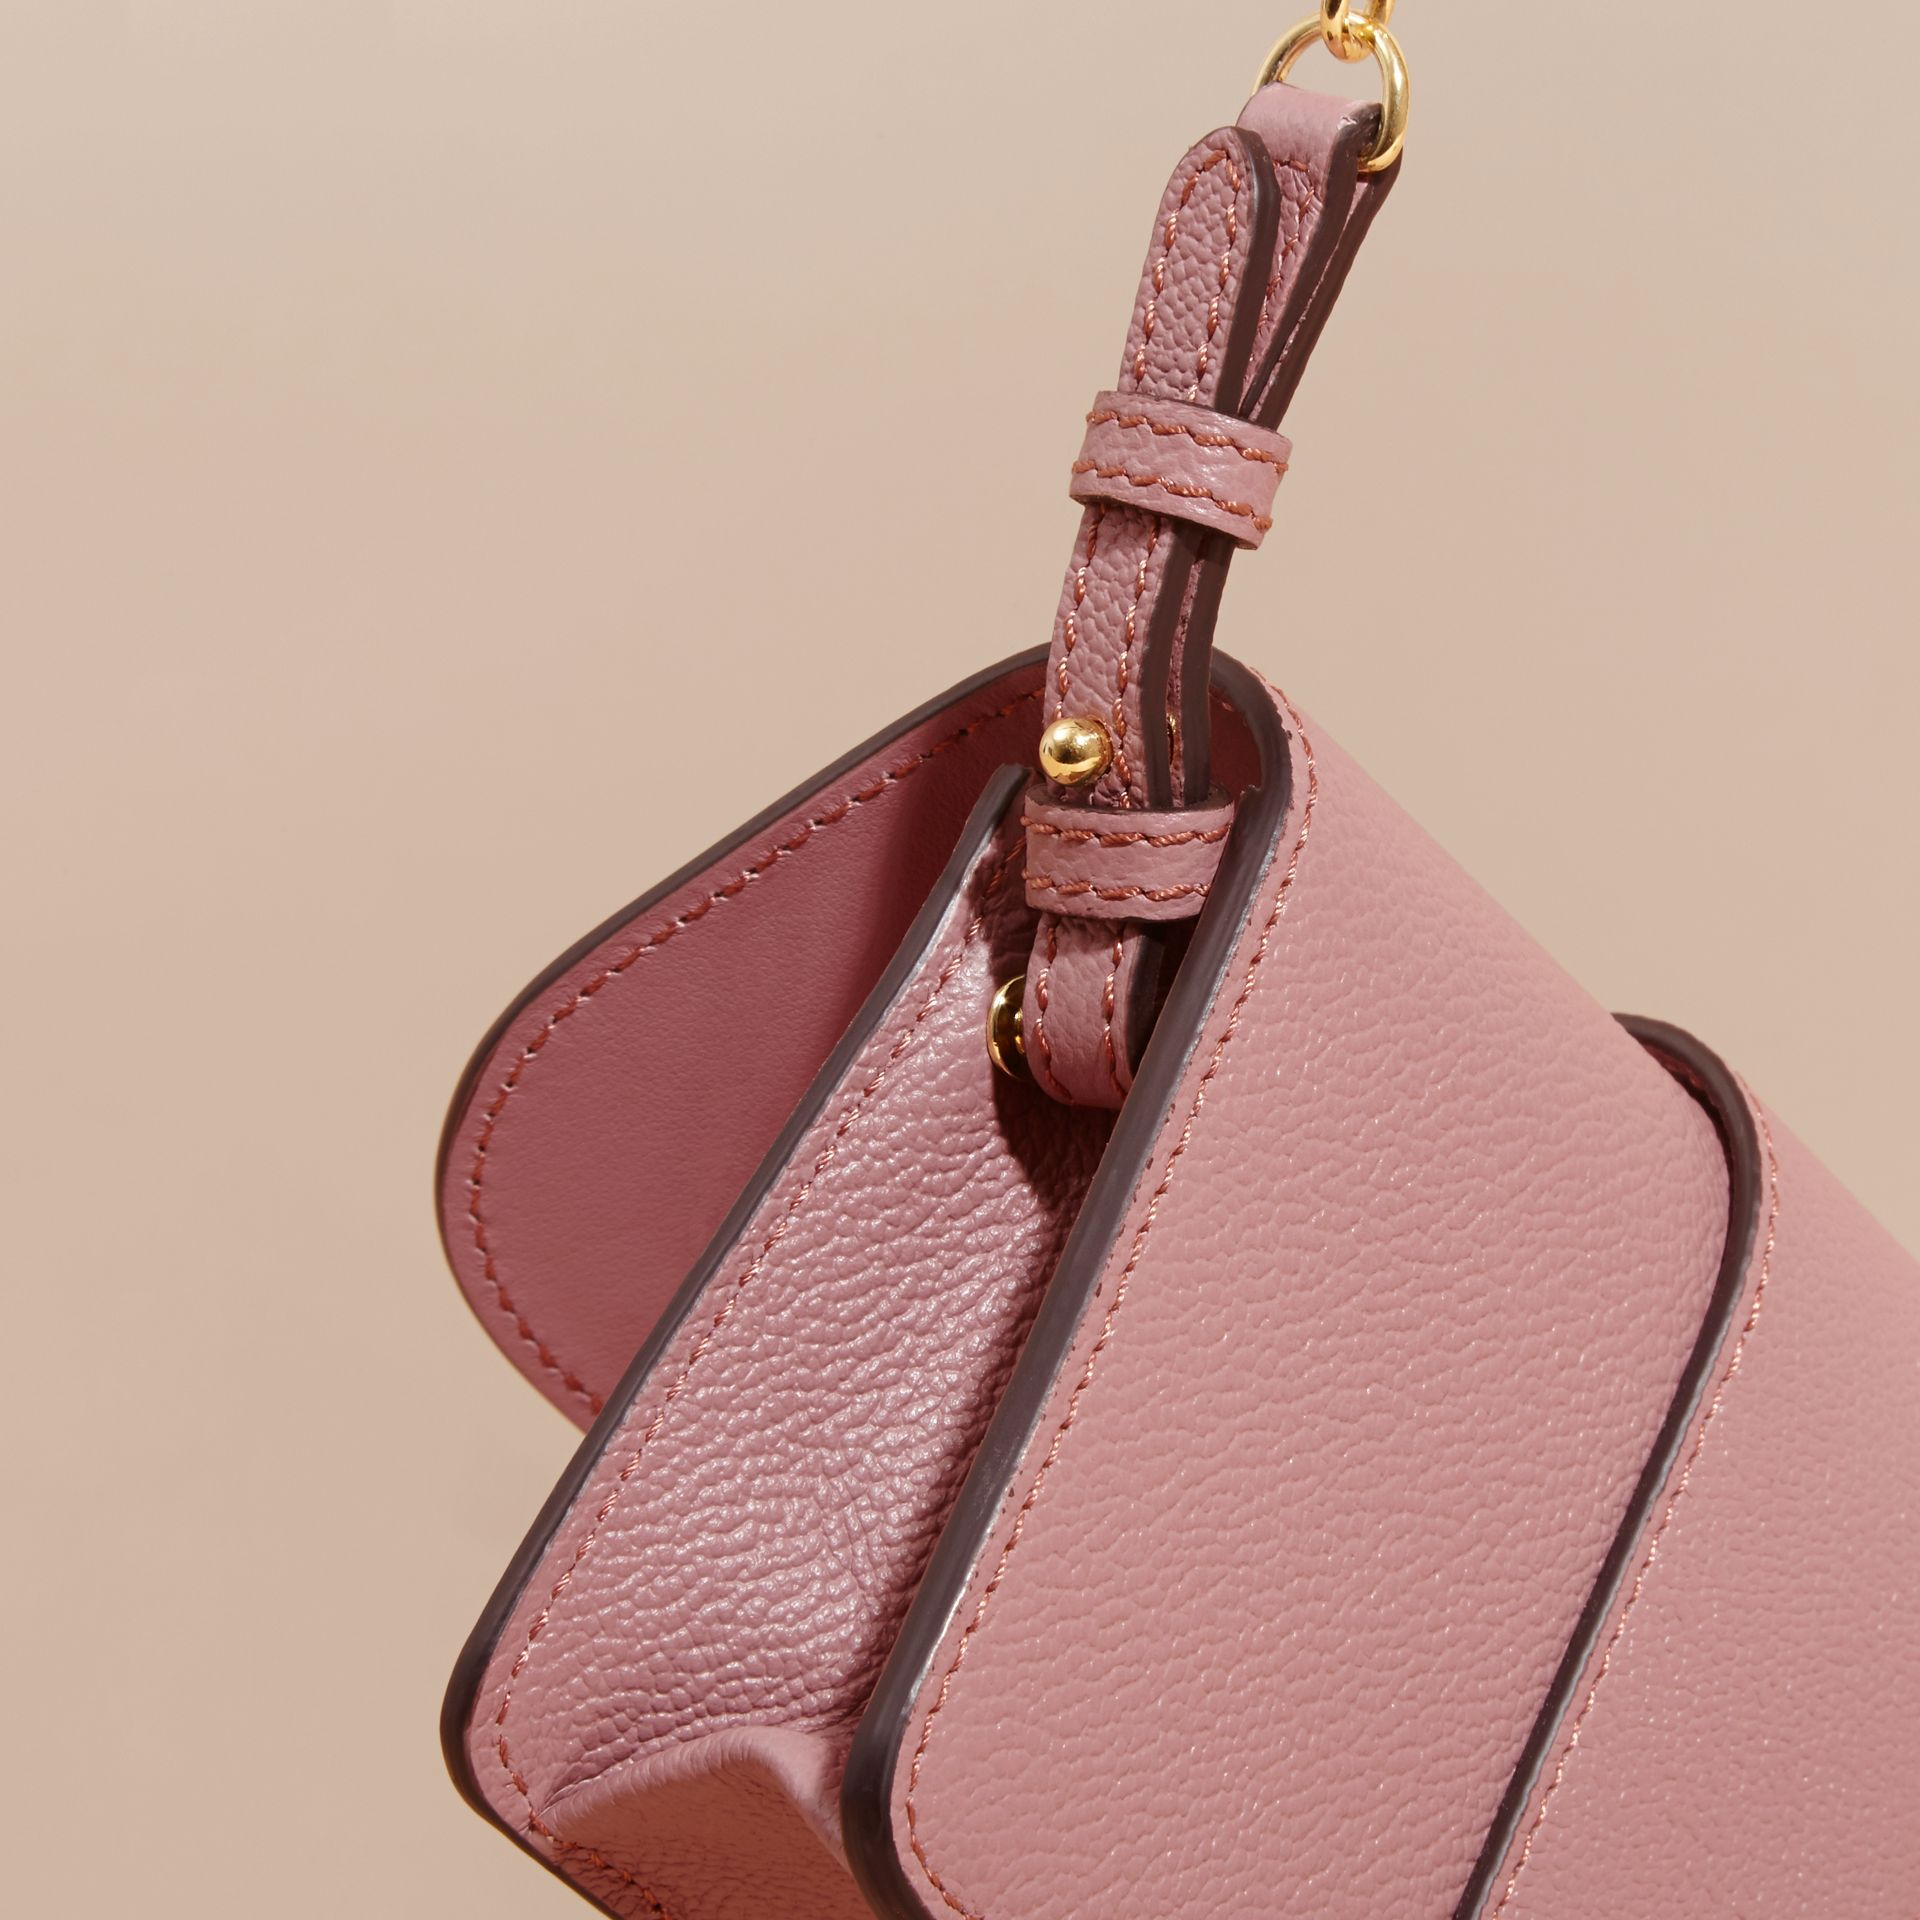 The Mini Buckle Bag in Grainy Leather in Dusty Pink - Women | Burberry Canada - gallery image 7